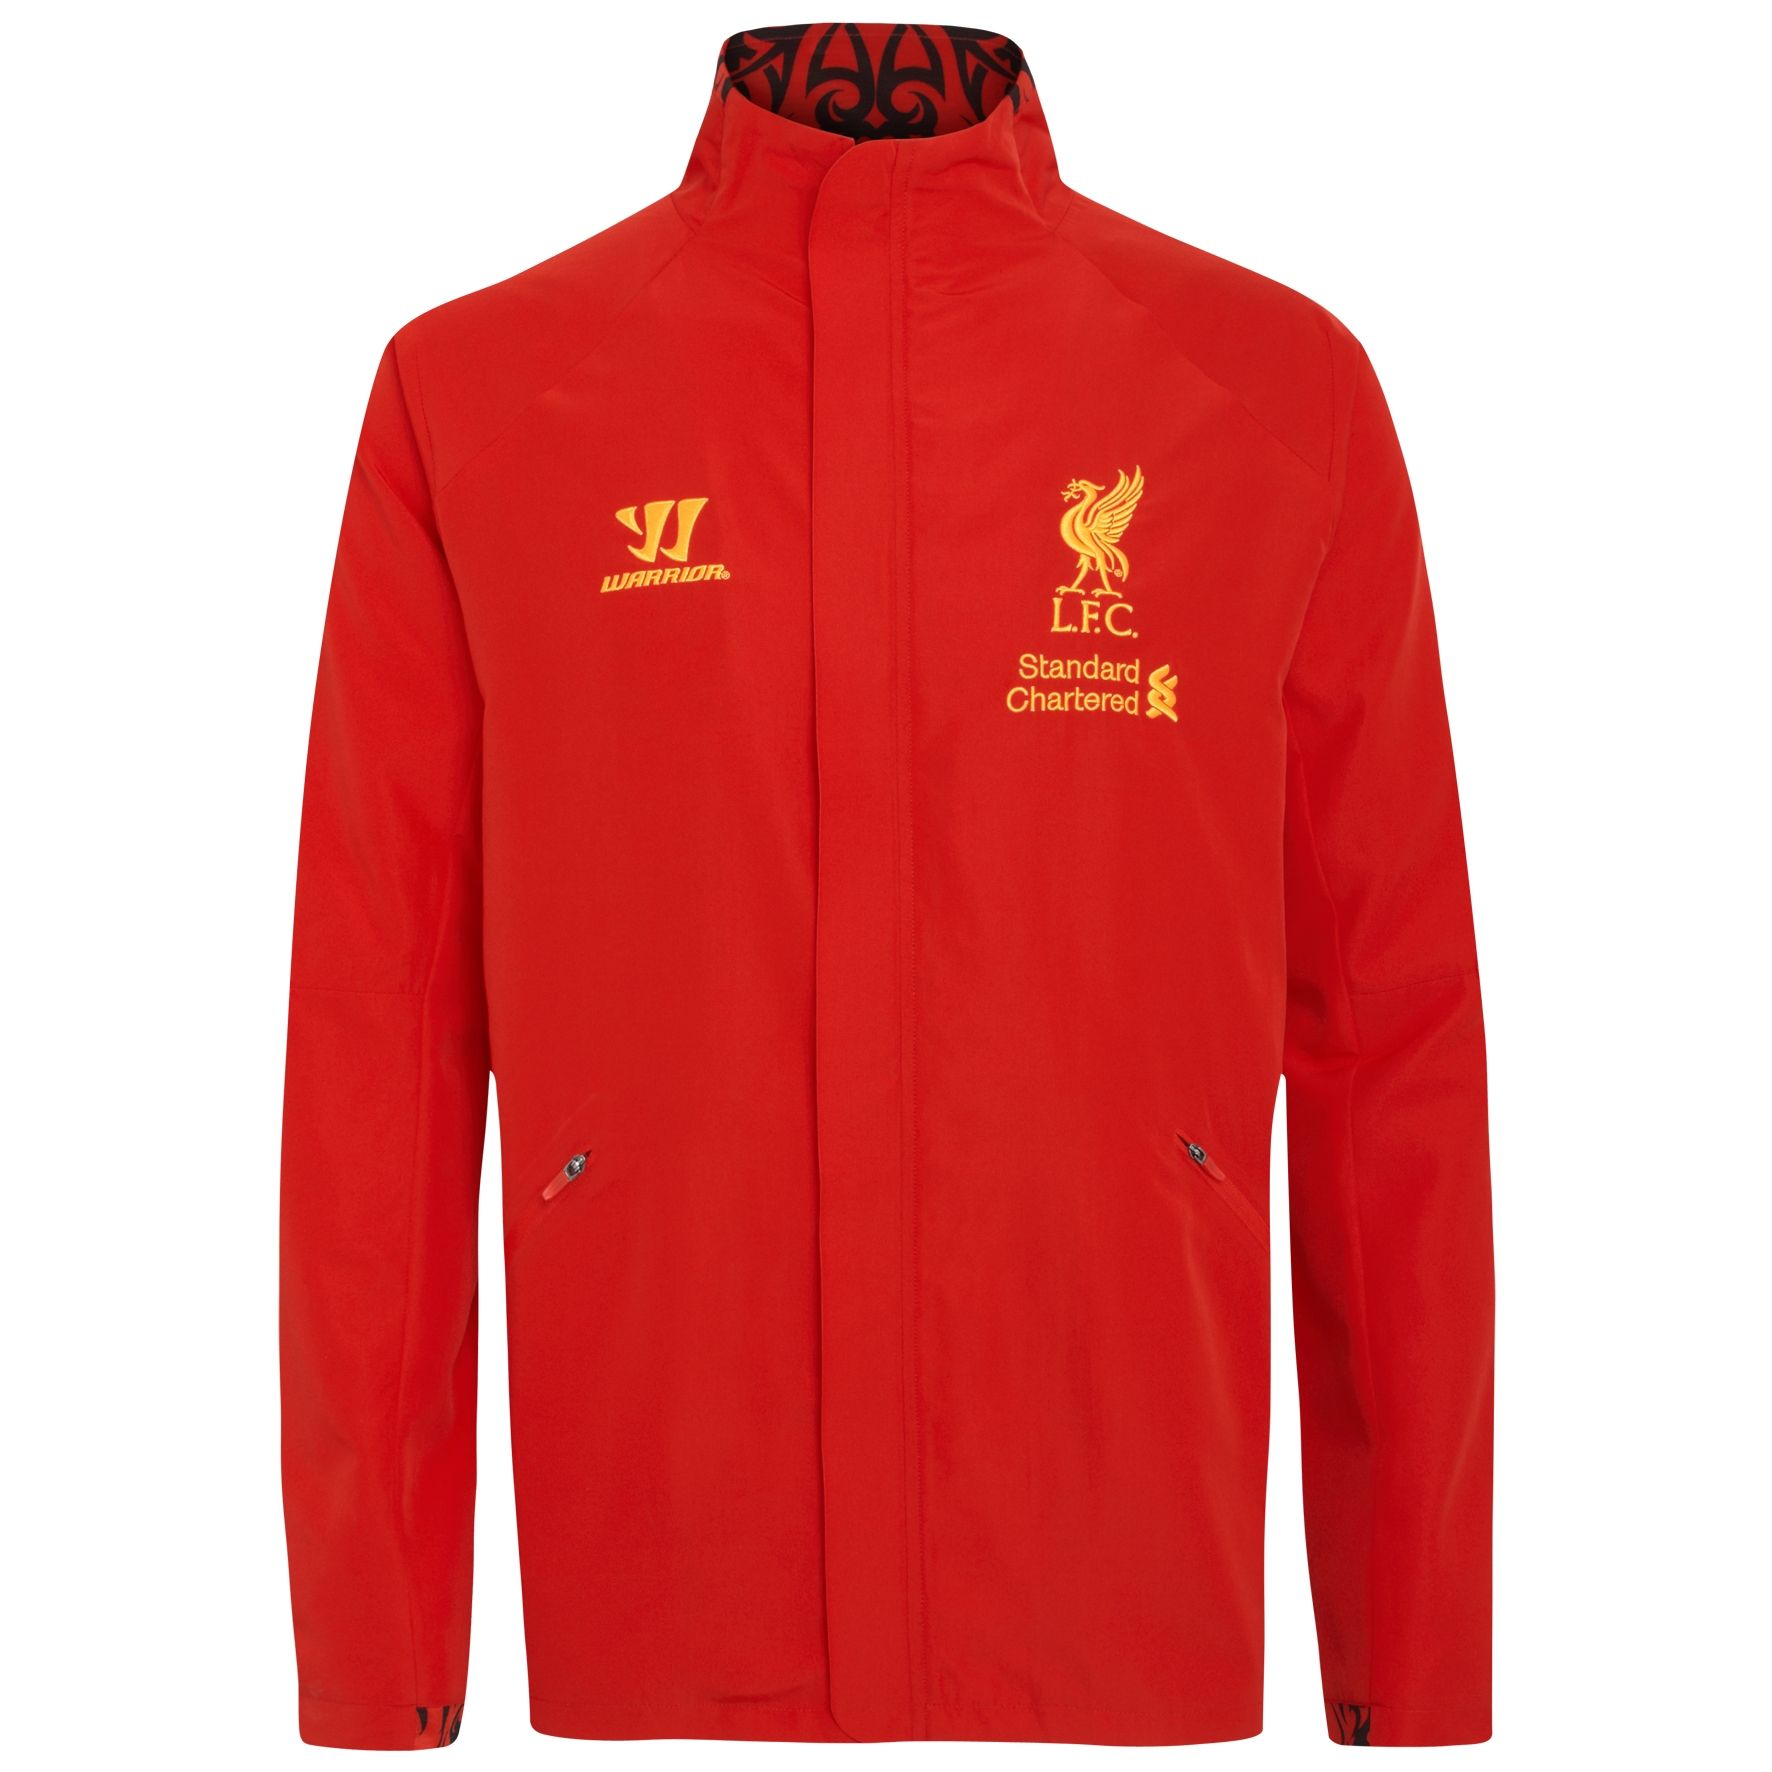 Picture of the Adult Red Anthem Jacket product LFC